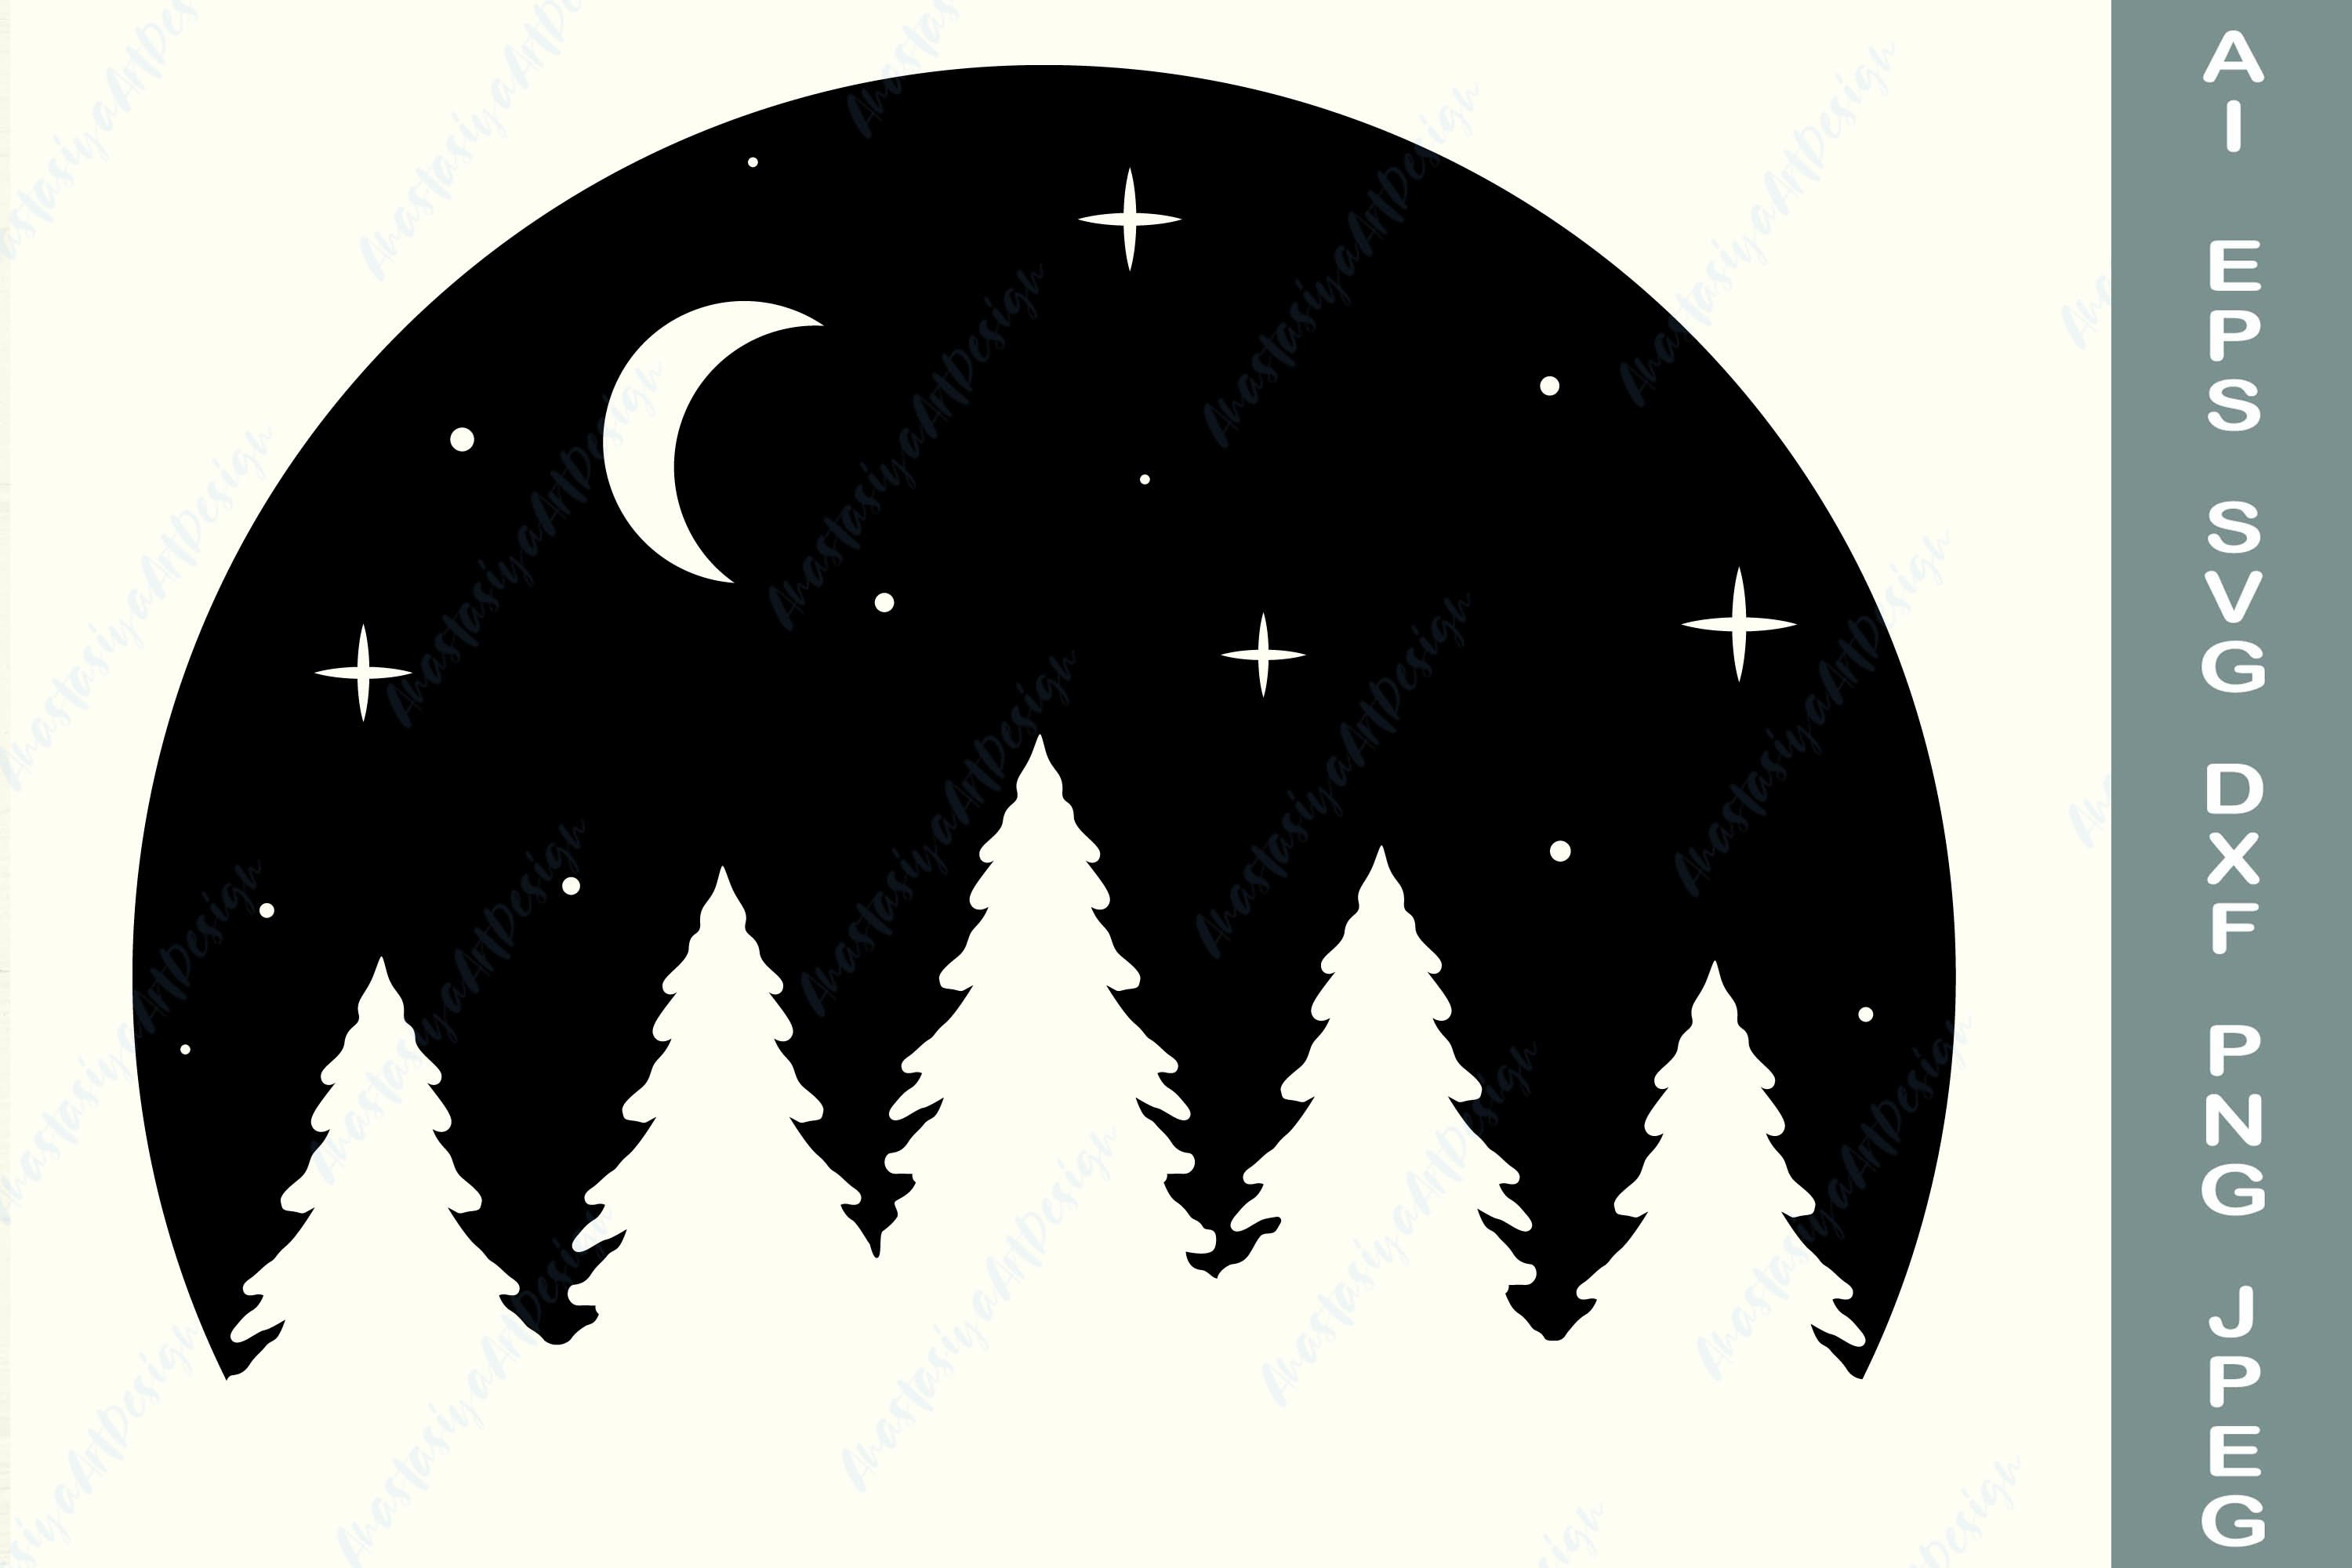 Moon and forest svg, Adventure shirt svg, Travel dxf example image 2